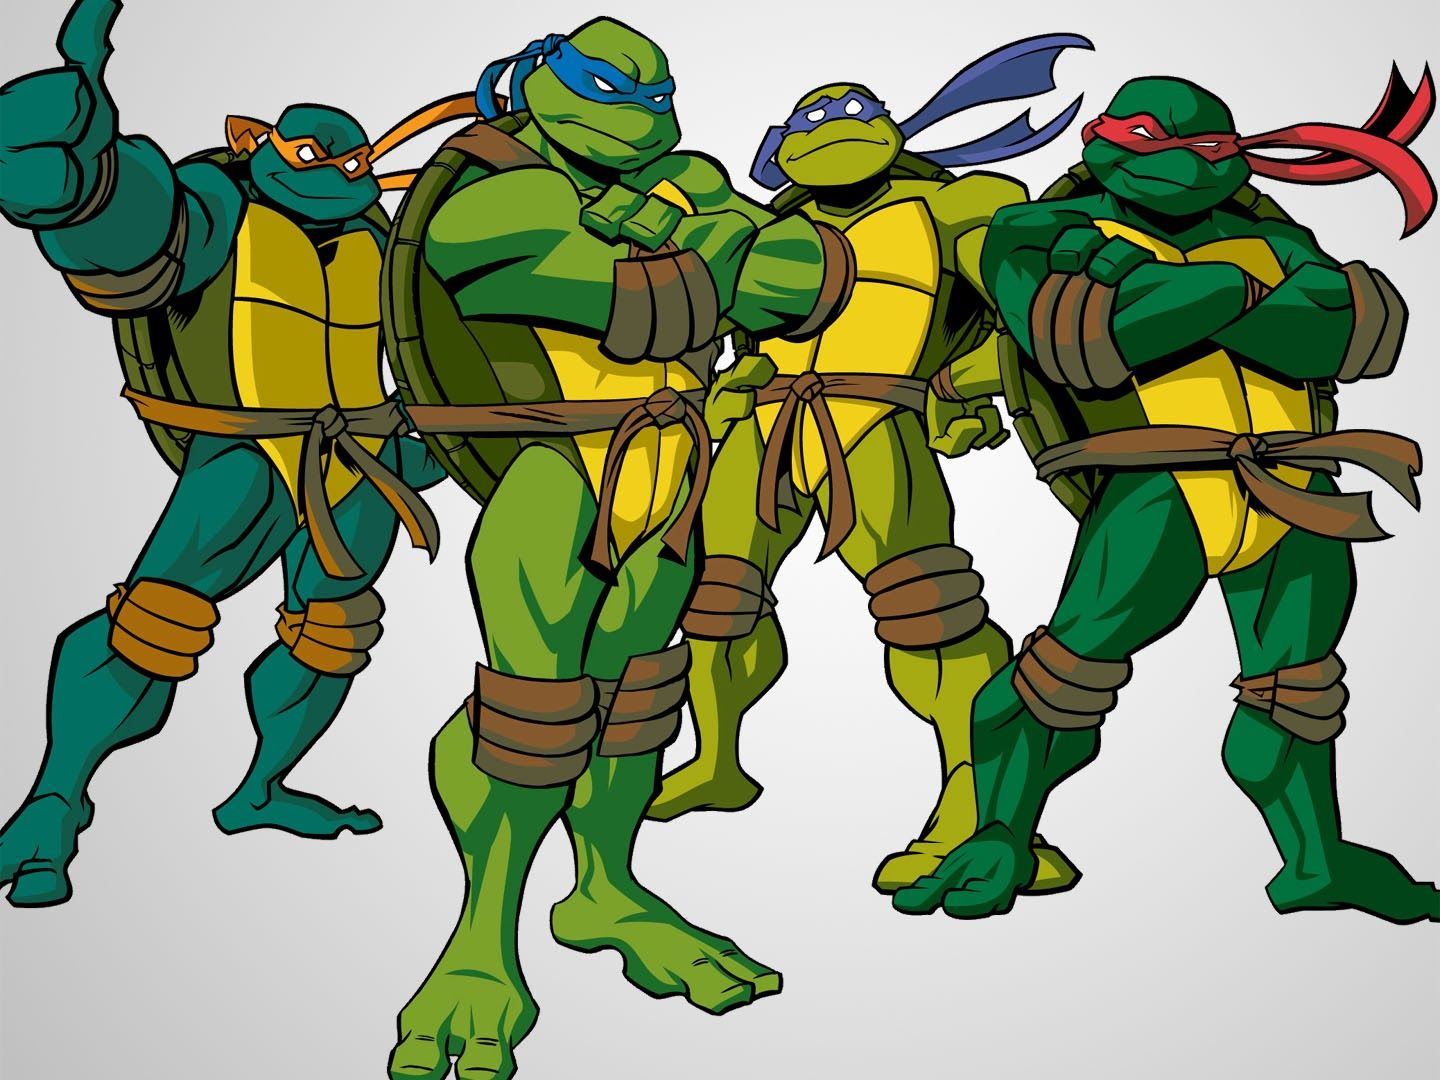 Teenage Mutant Ninja Turtles 2003 | Ninja turtles cartoon, Tmnt, Ninja